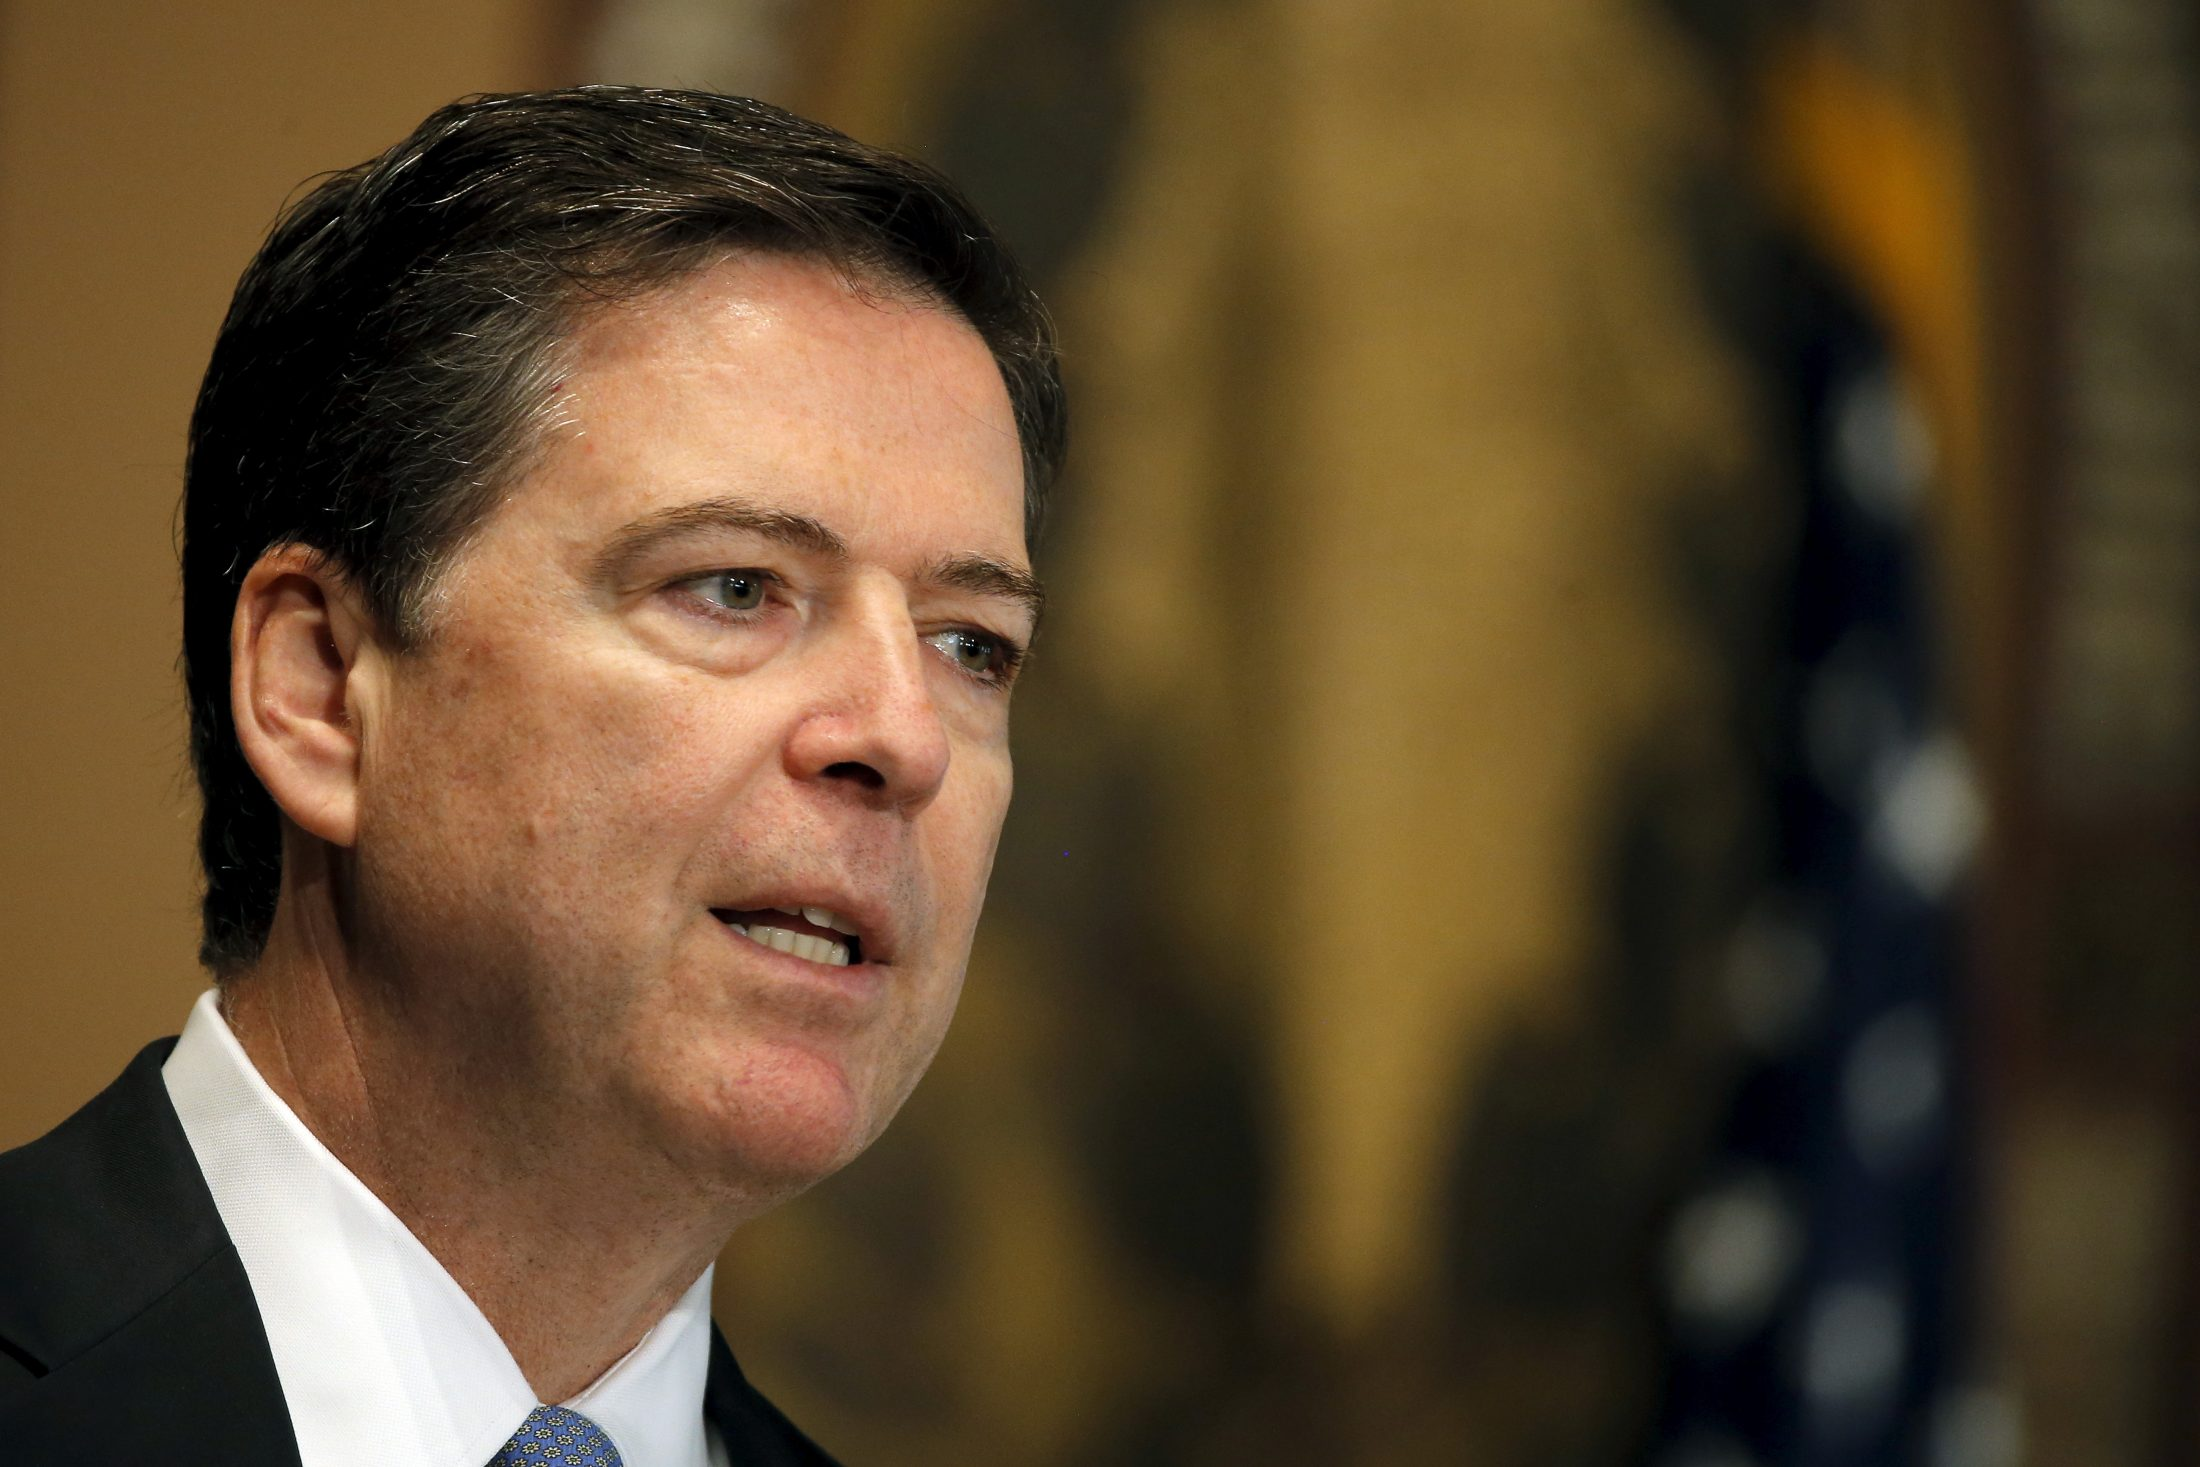 File photo of FBI Director James Comey by Carlos Barria/Reuters